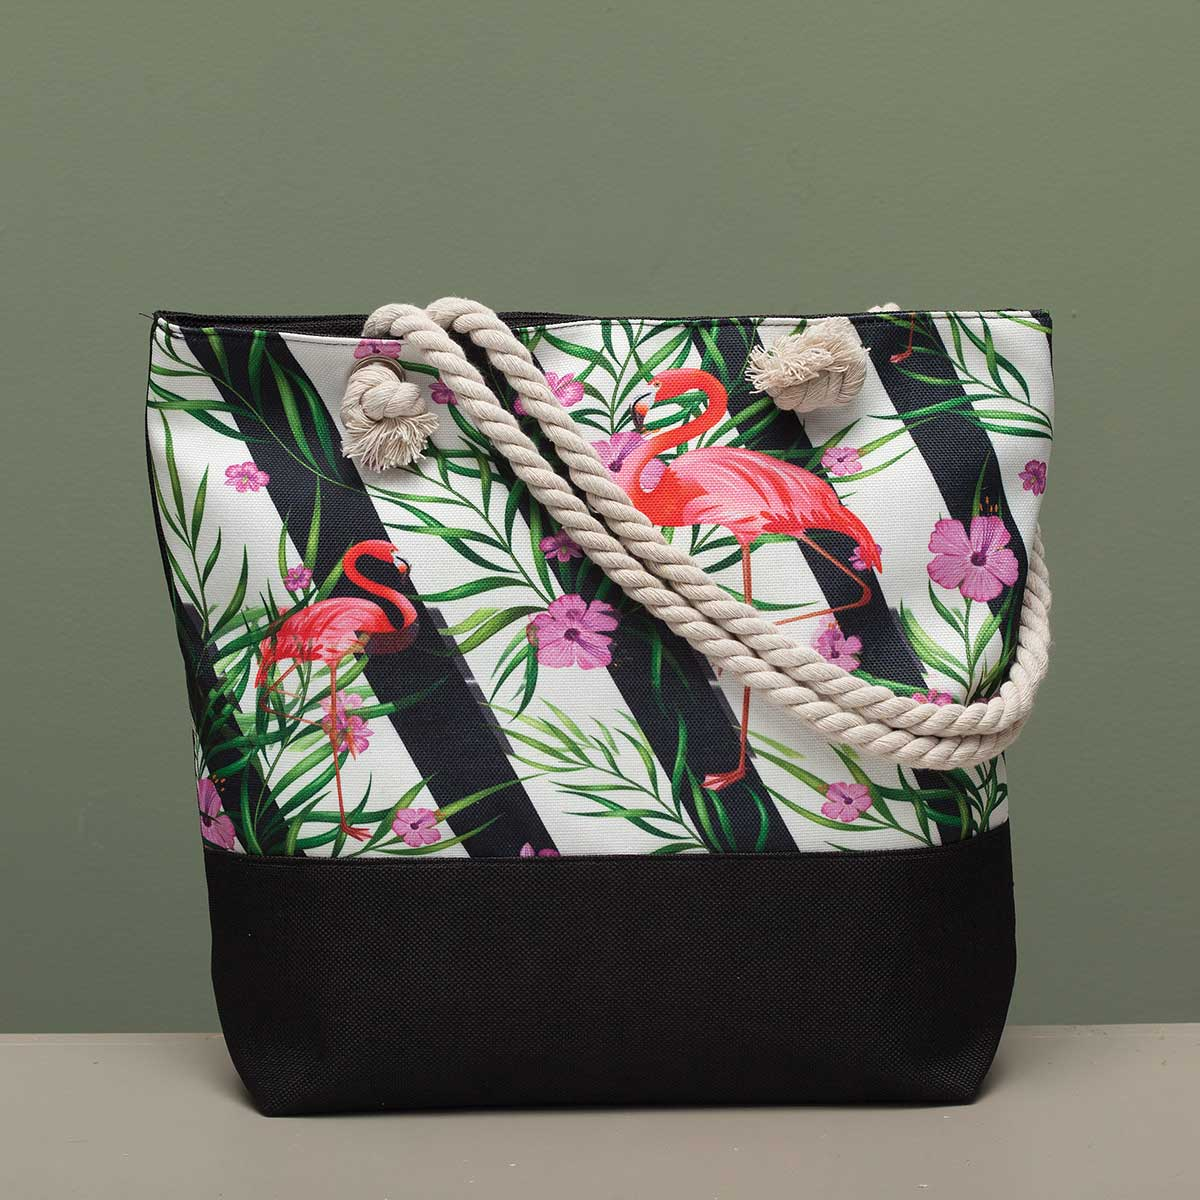 "Flamingo with Wavy Stripe Tapestry Bag 17.5""x5""x14"" with 10"" Sho"